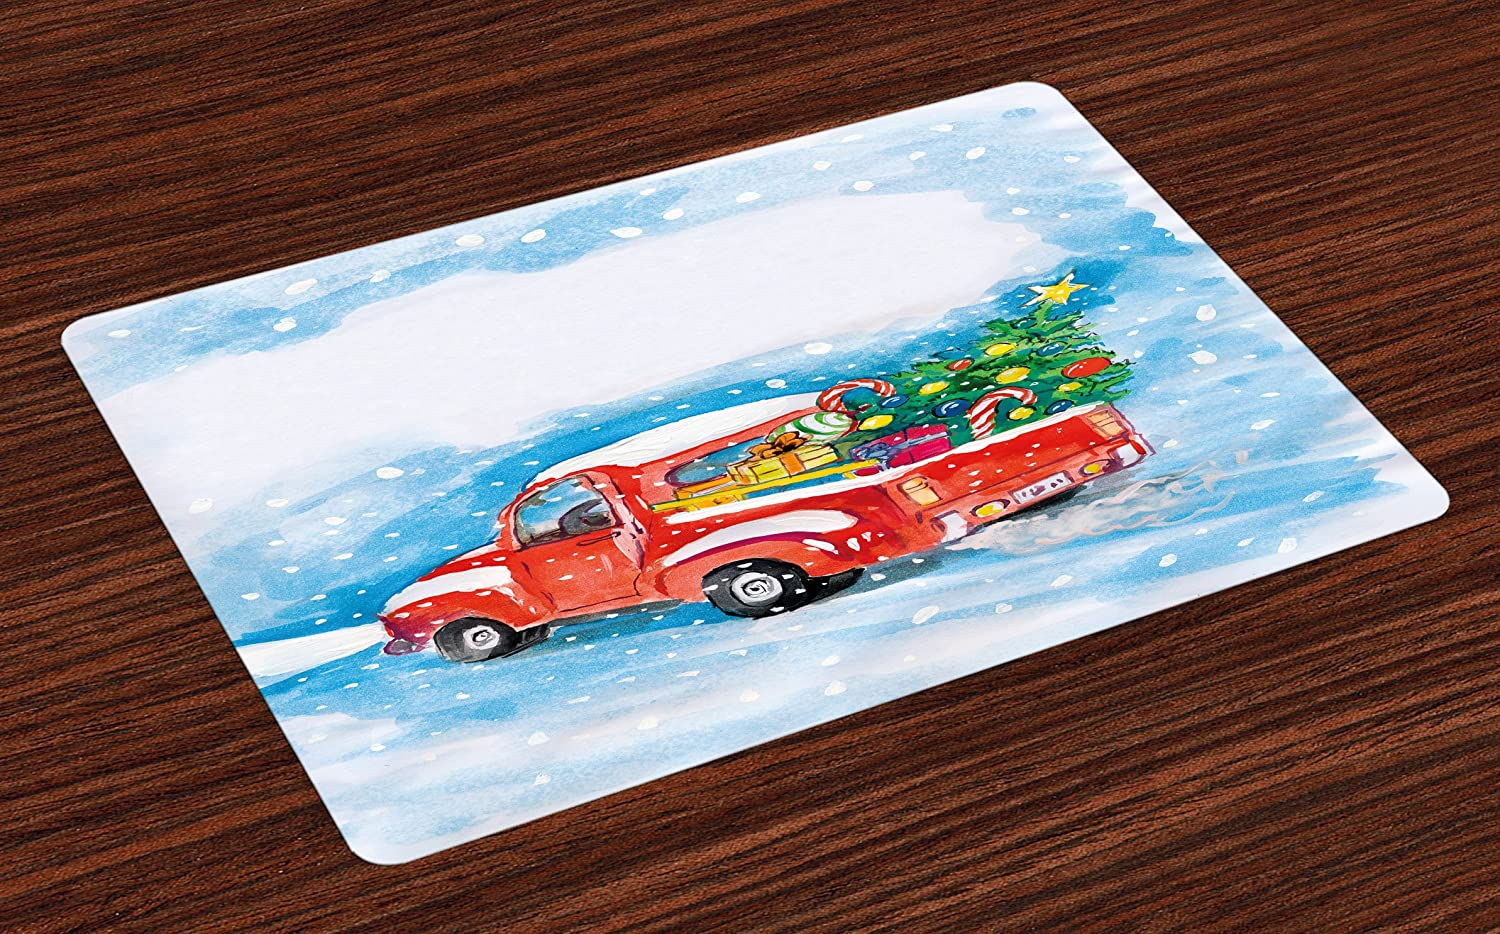 Ambesonne Christmas Place Mats Set of 4, Vintage Red Truck in Snowy Winter Scene with Tree and Gifts Candy Cane Kids, Washable Fabric Placemats for Dining Room Kitchen Table Decor, Blue White Red